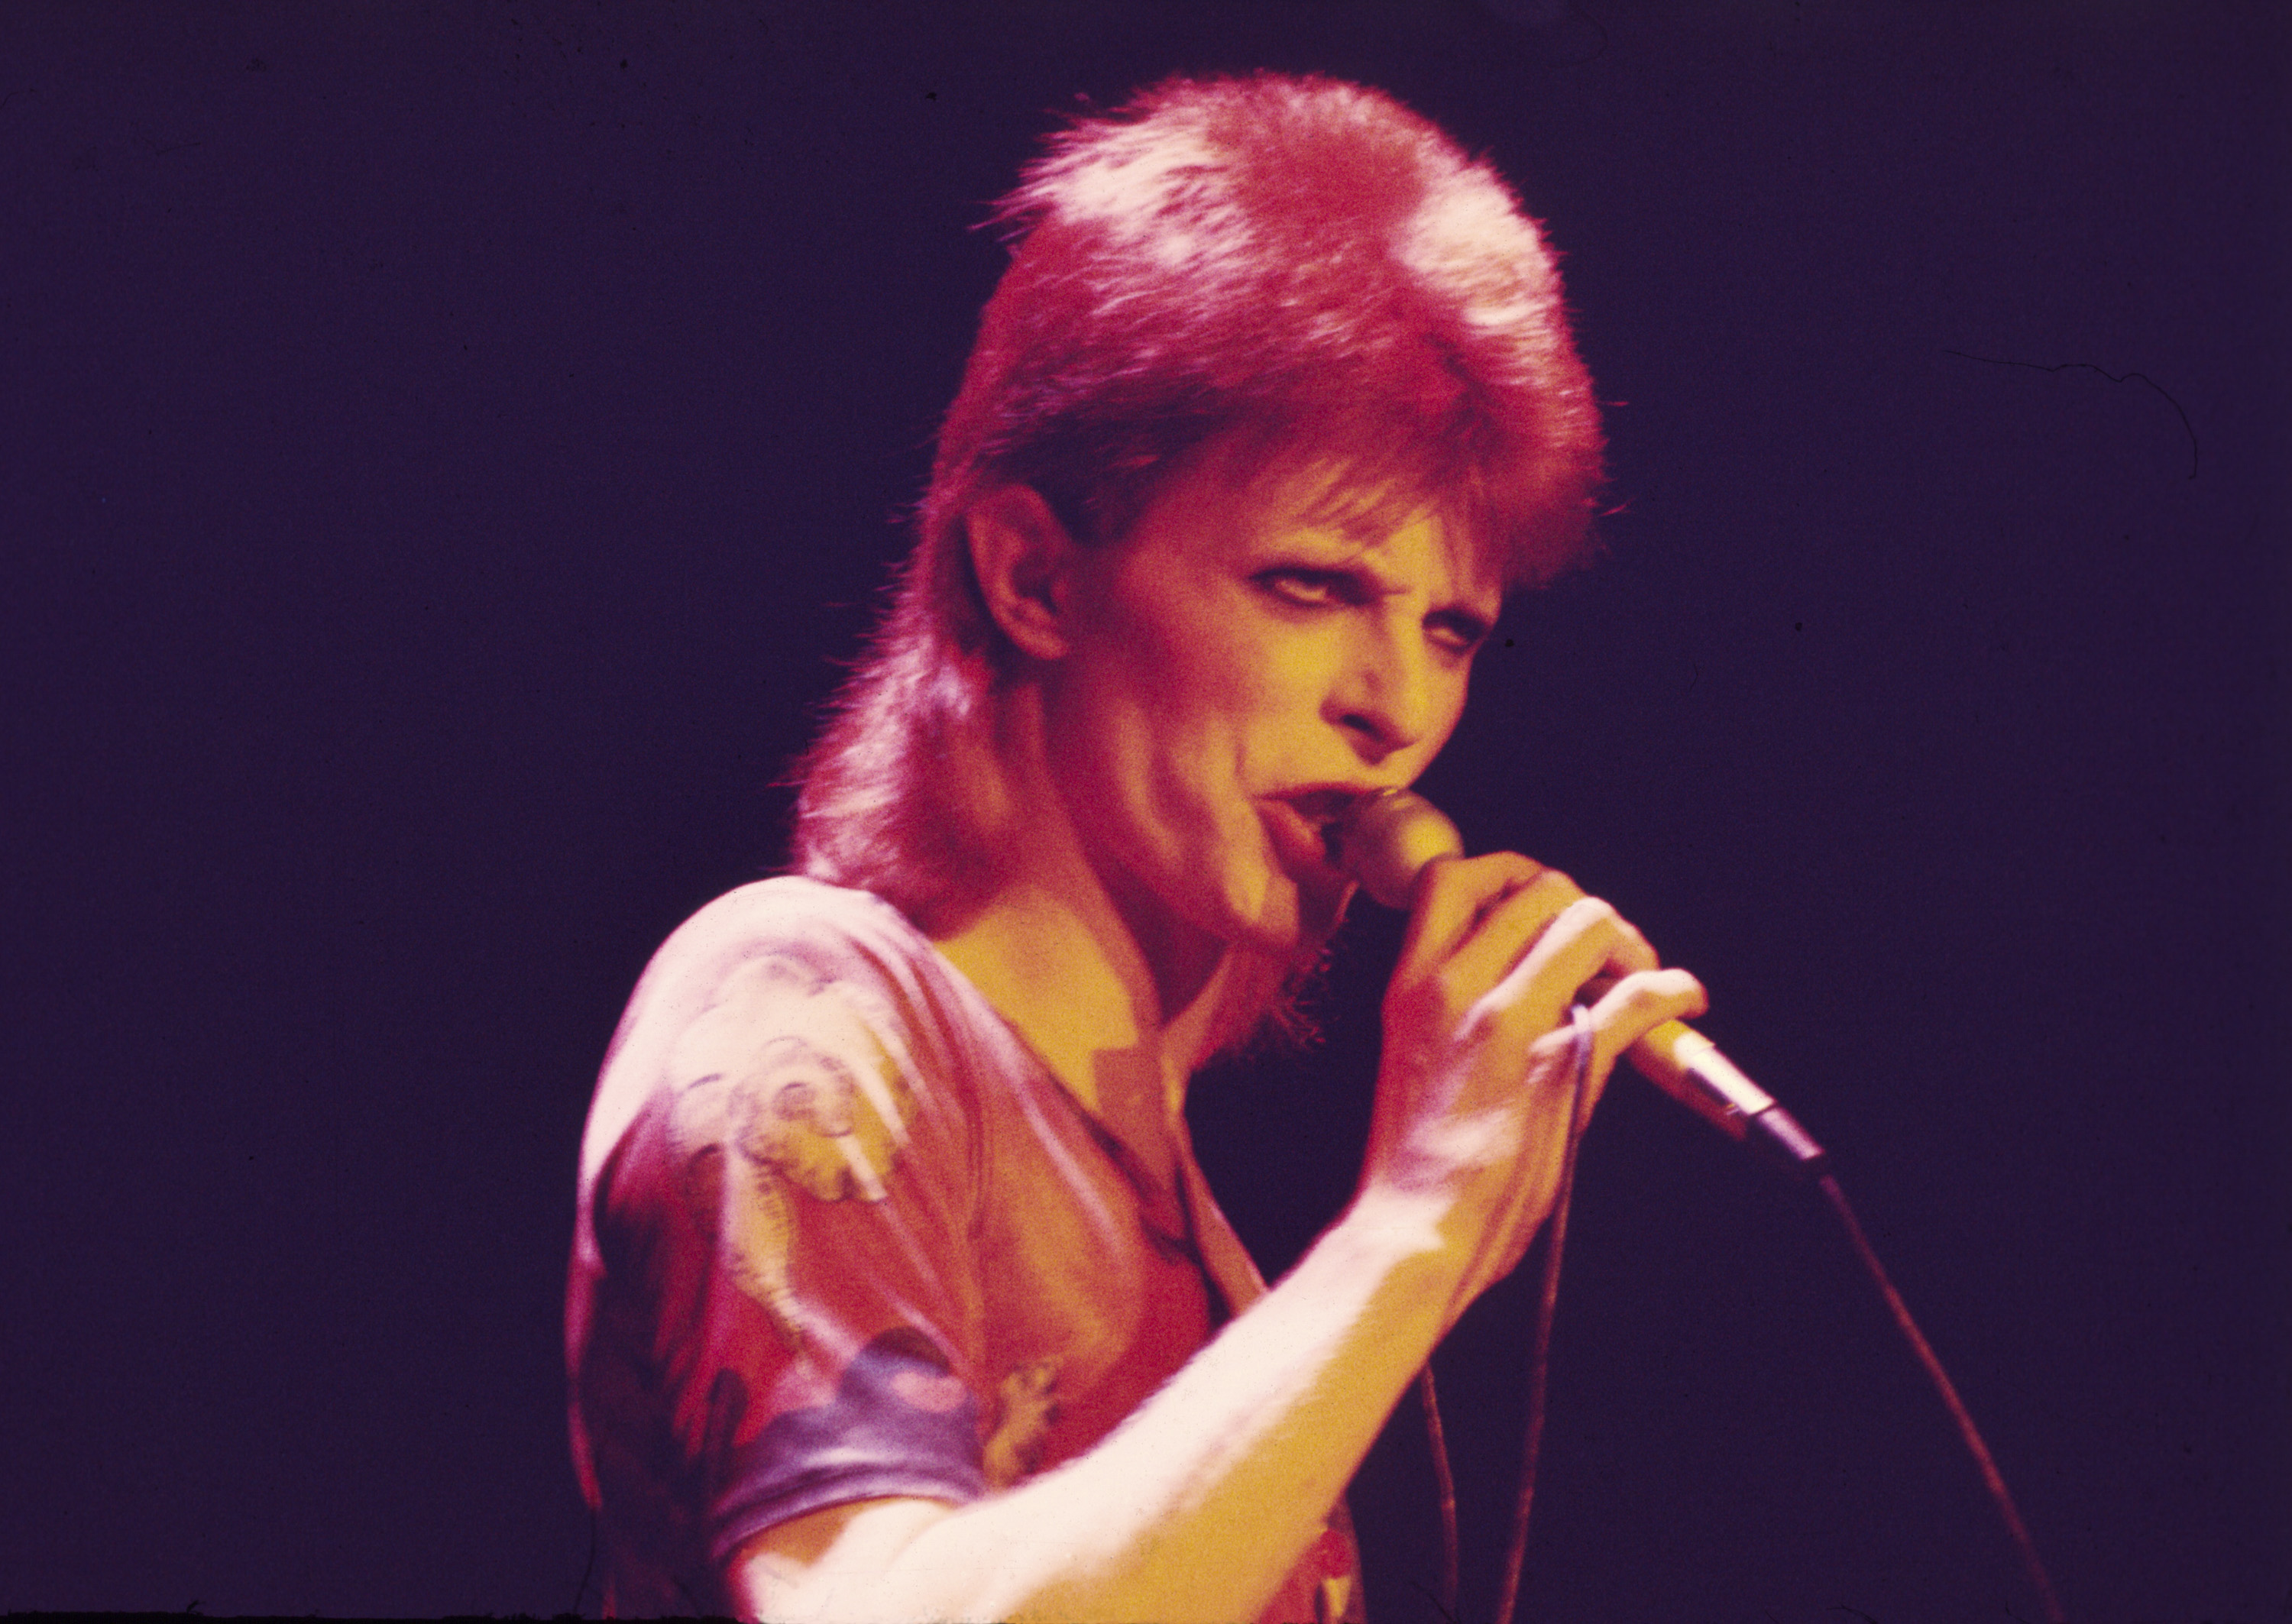 David Bowie performs as Ziggy Stardust in 1973. Photo by: Chris Walter/WireImage